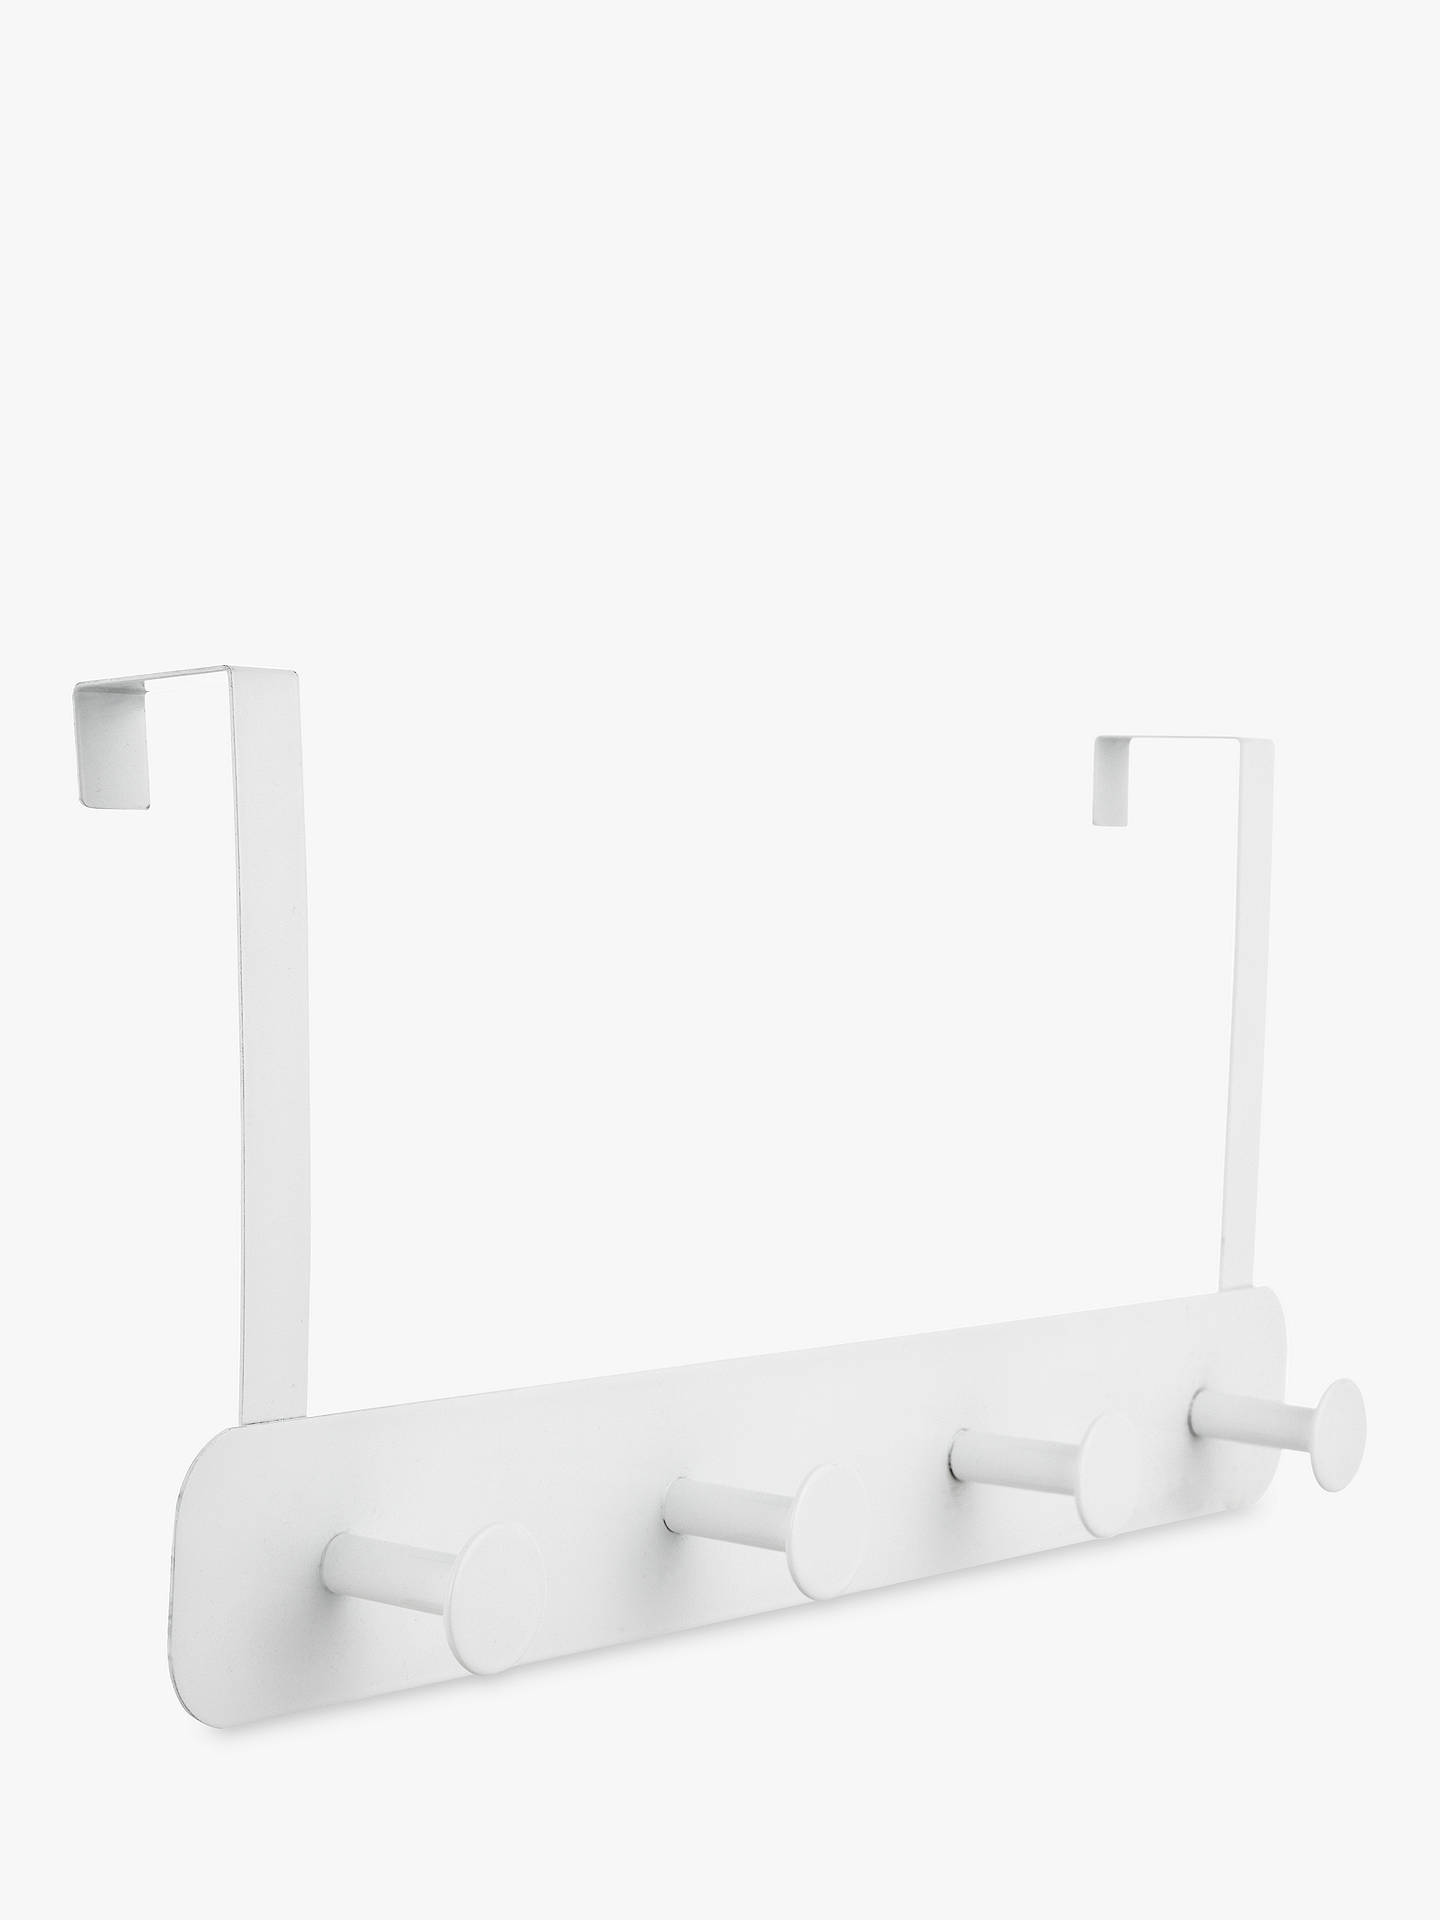 BuyJohn Lewis & Partners Over The Door Hanging Rack, 4 Hook Online at johnlewis.com